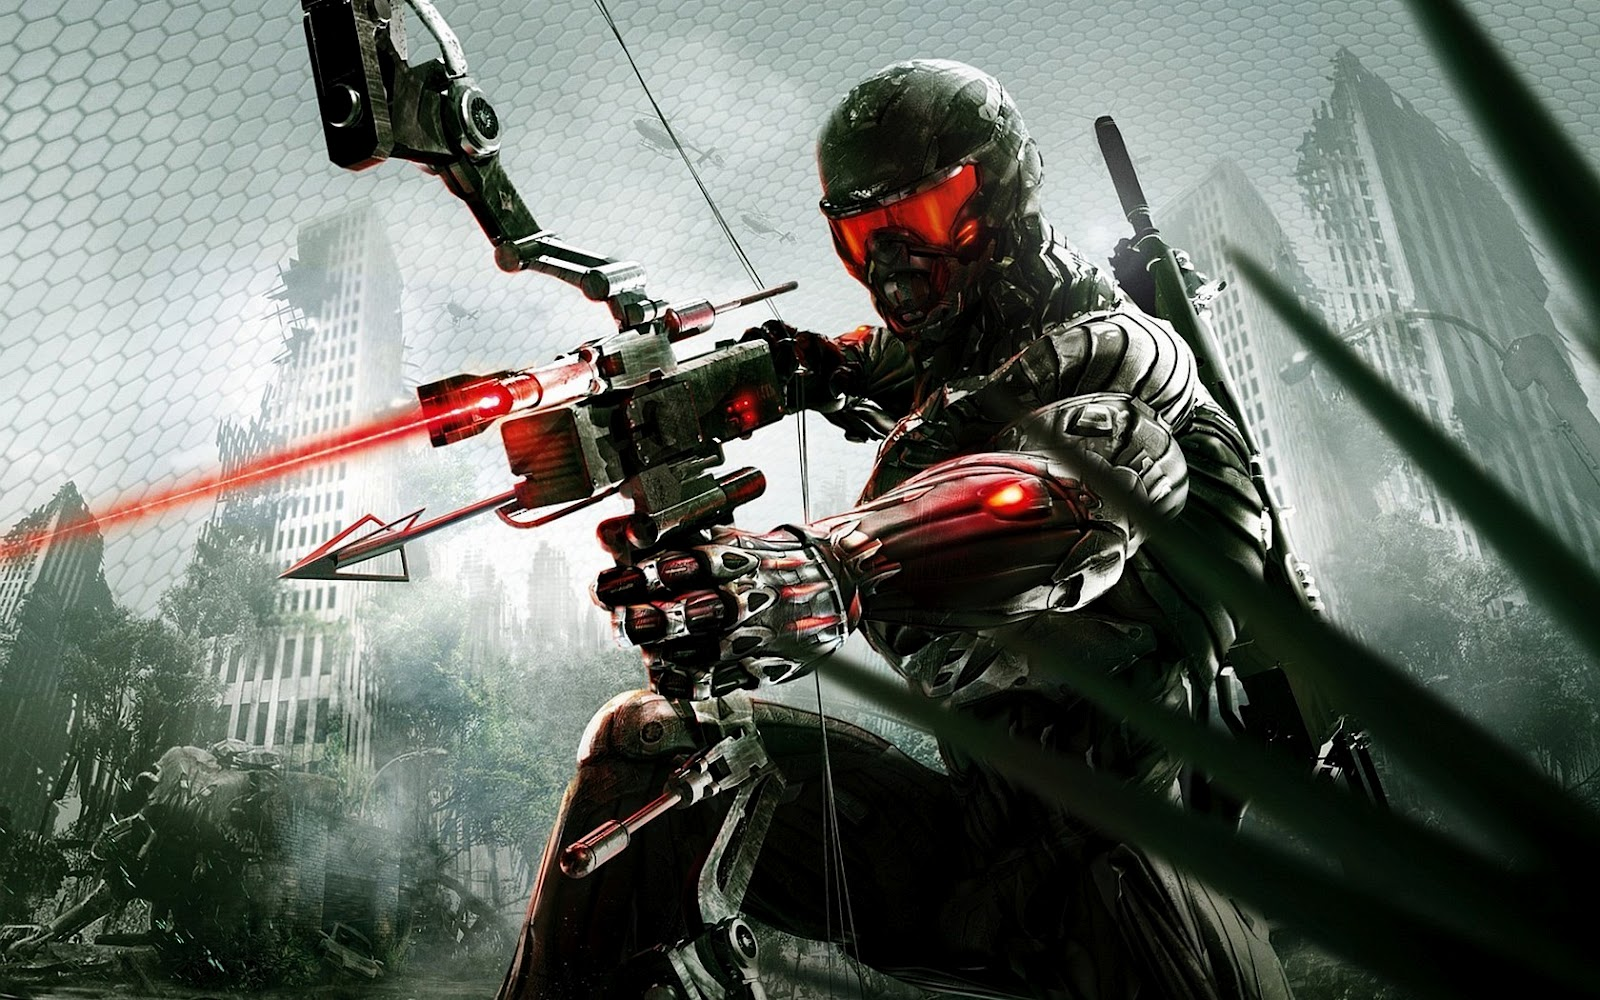 central wallpaper crysis 3 new game hd wallpapers and dvd cover. Black Bedroom Furniture Sets. Home Design Ideas